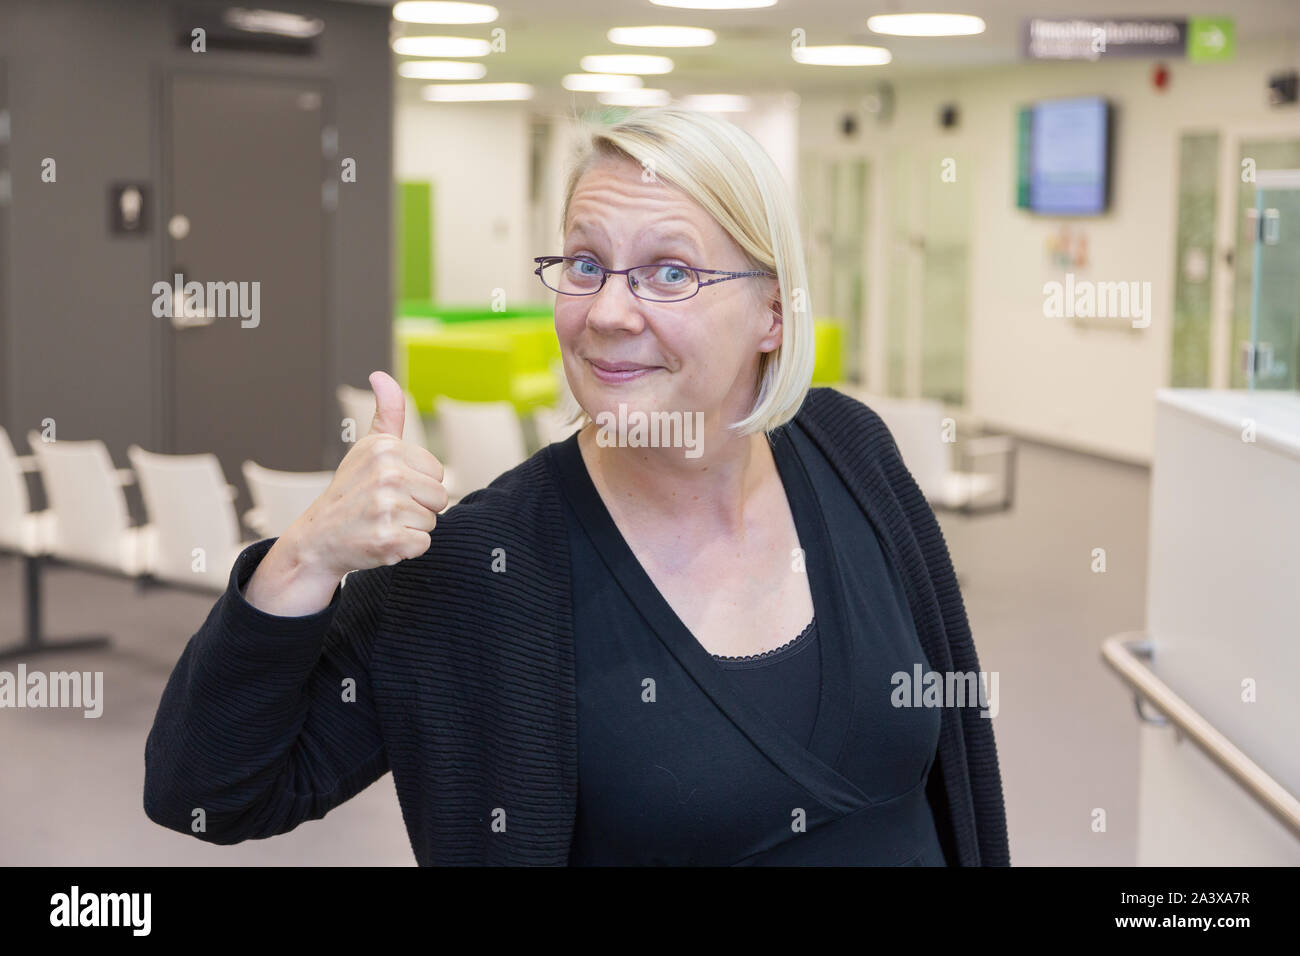 At the medical health center in Finland Stock Photo